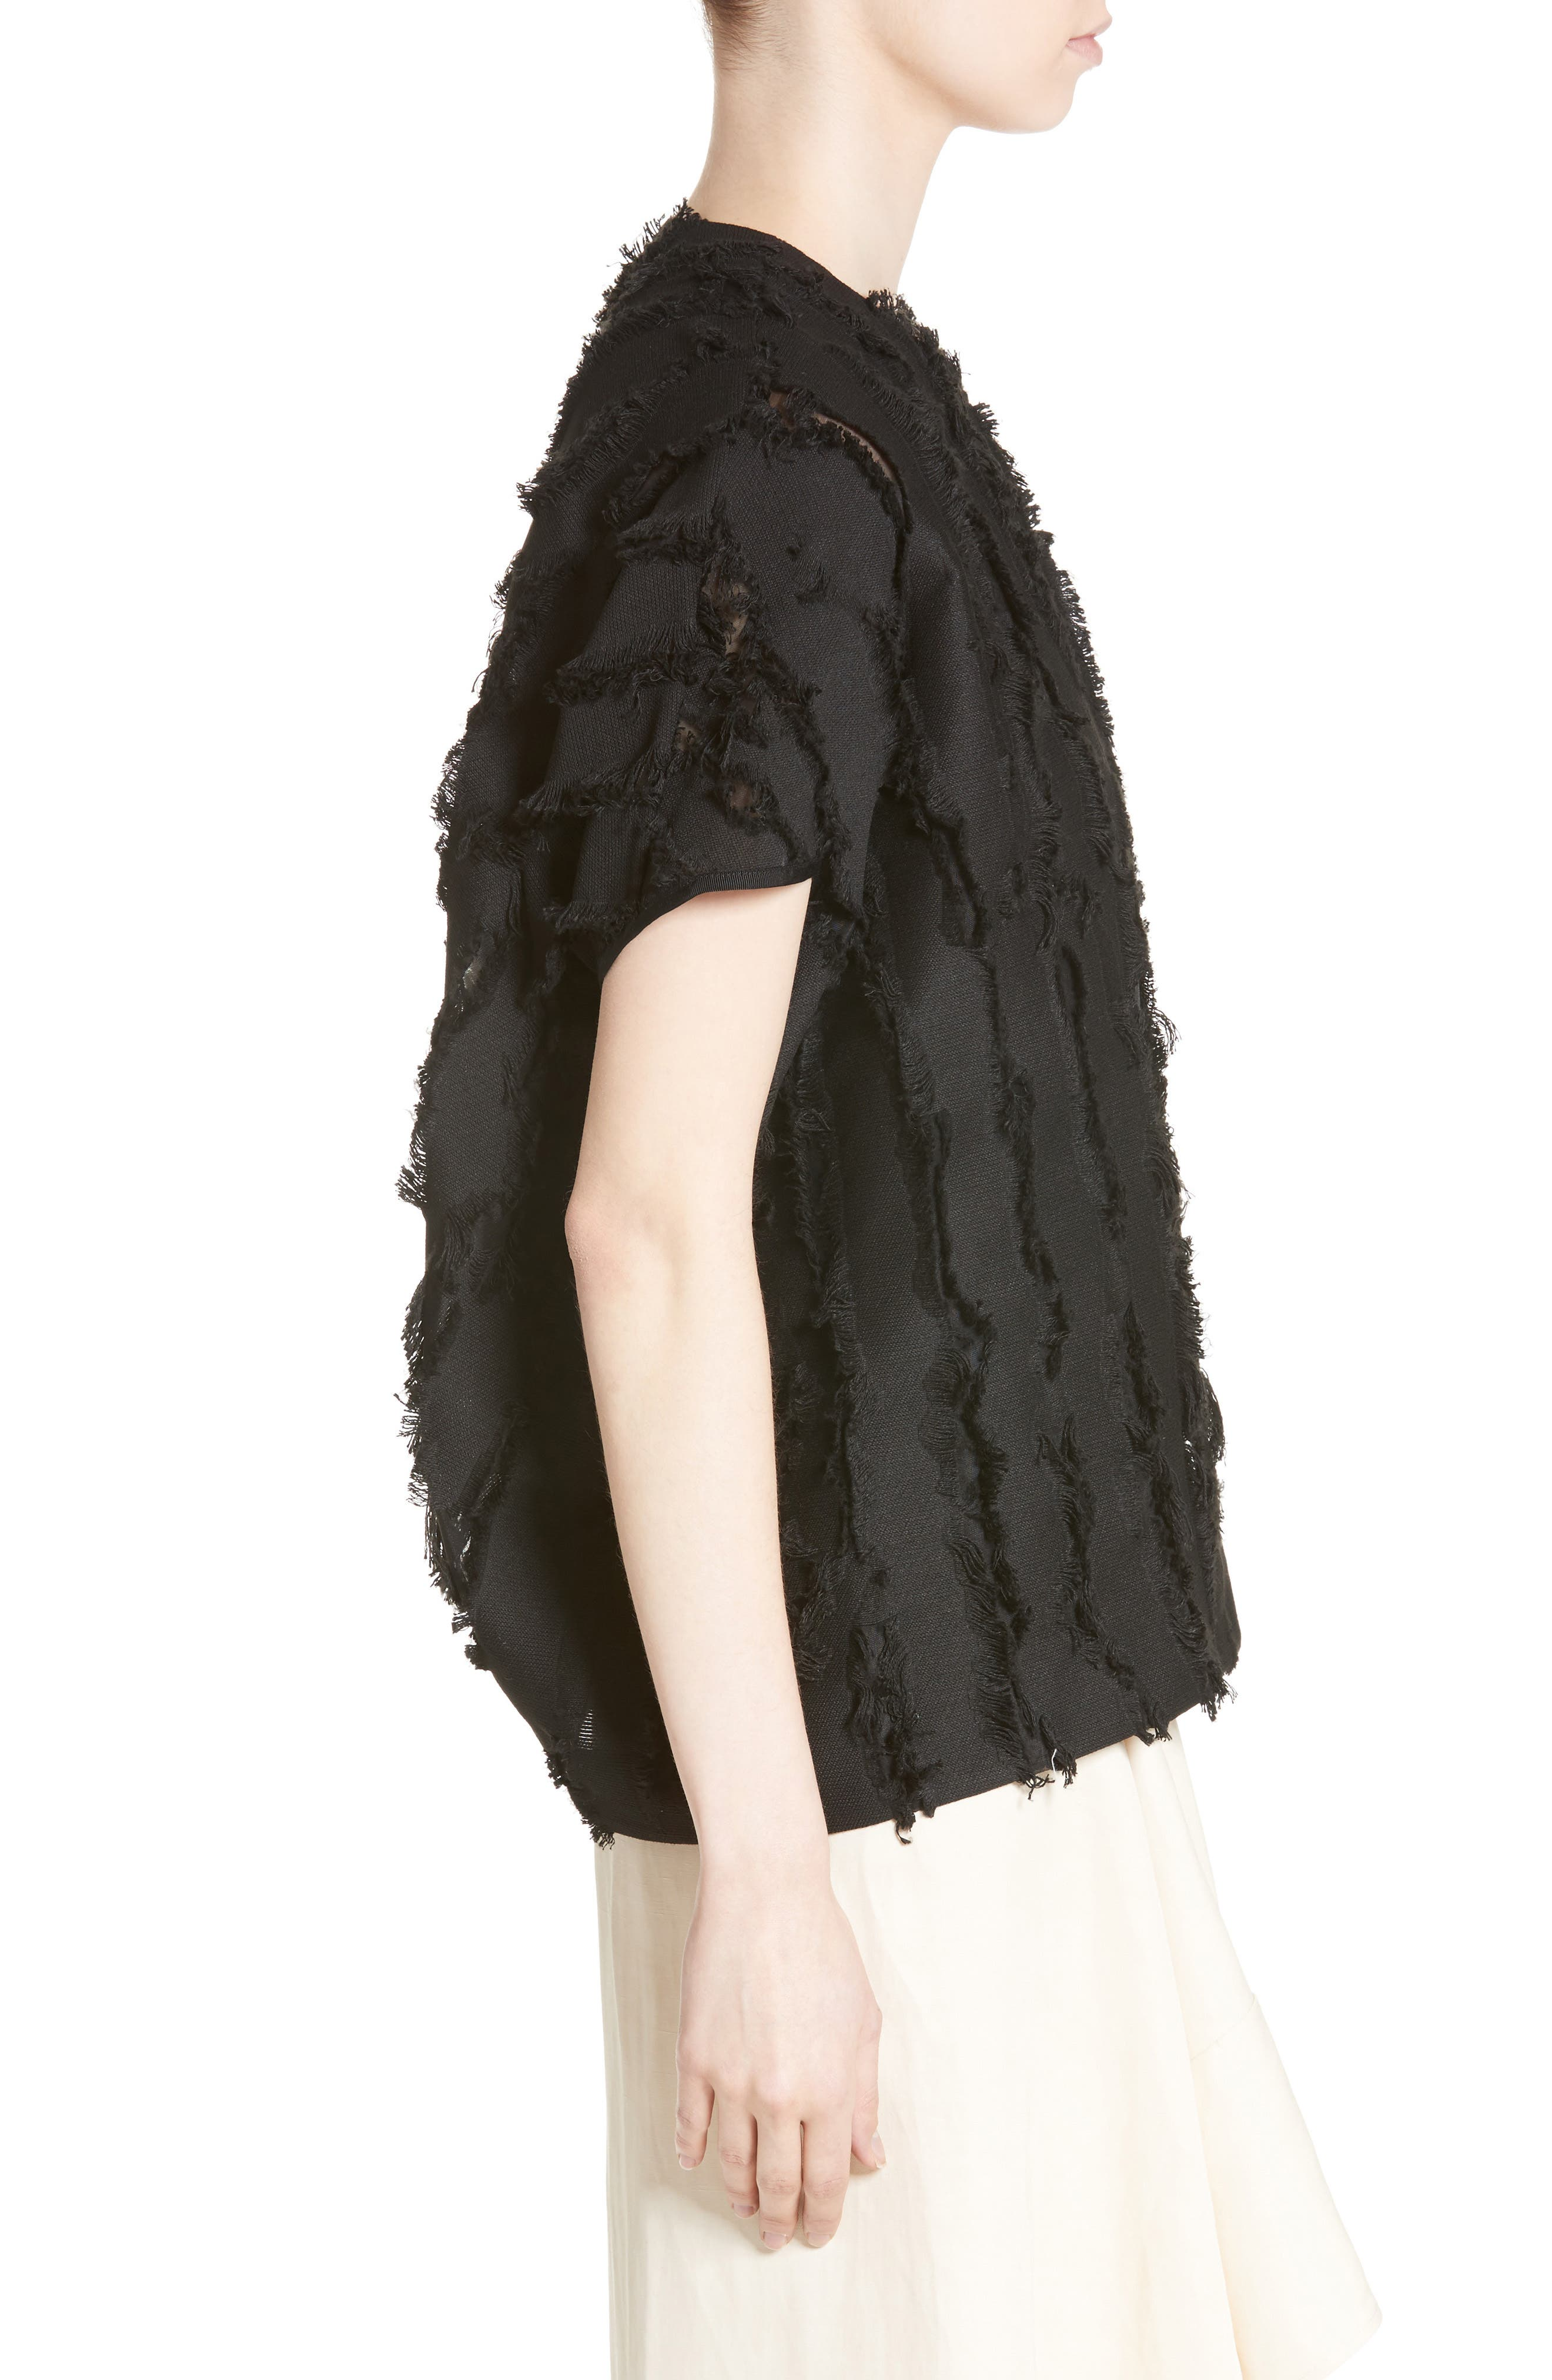 Koya Fringe Royal Shrug,                             Alternate thumbnail 3, color,                             001